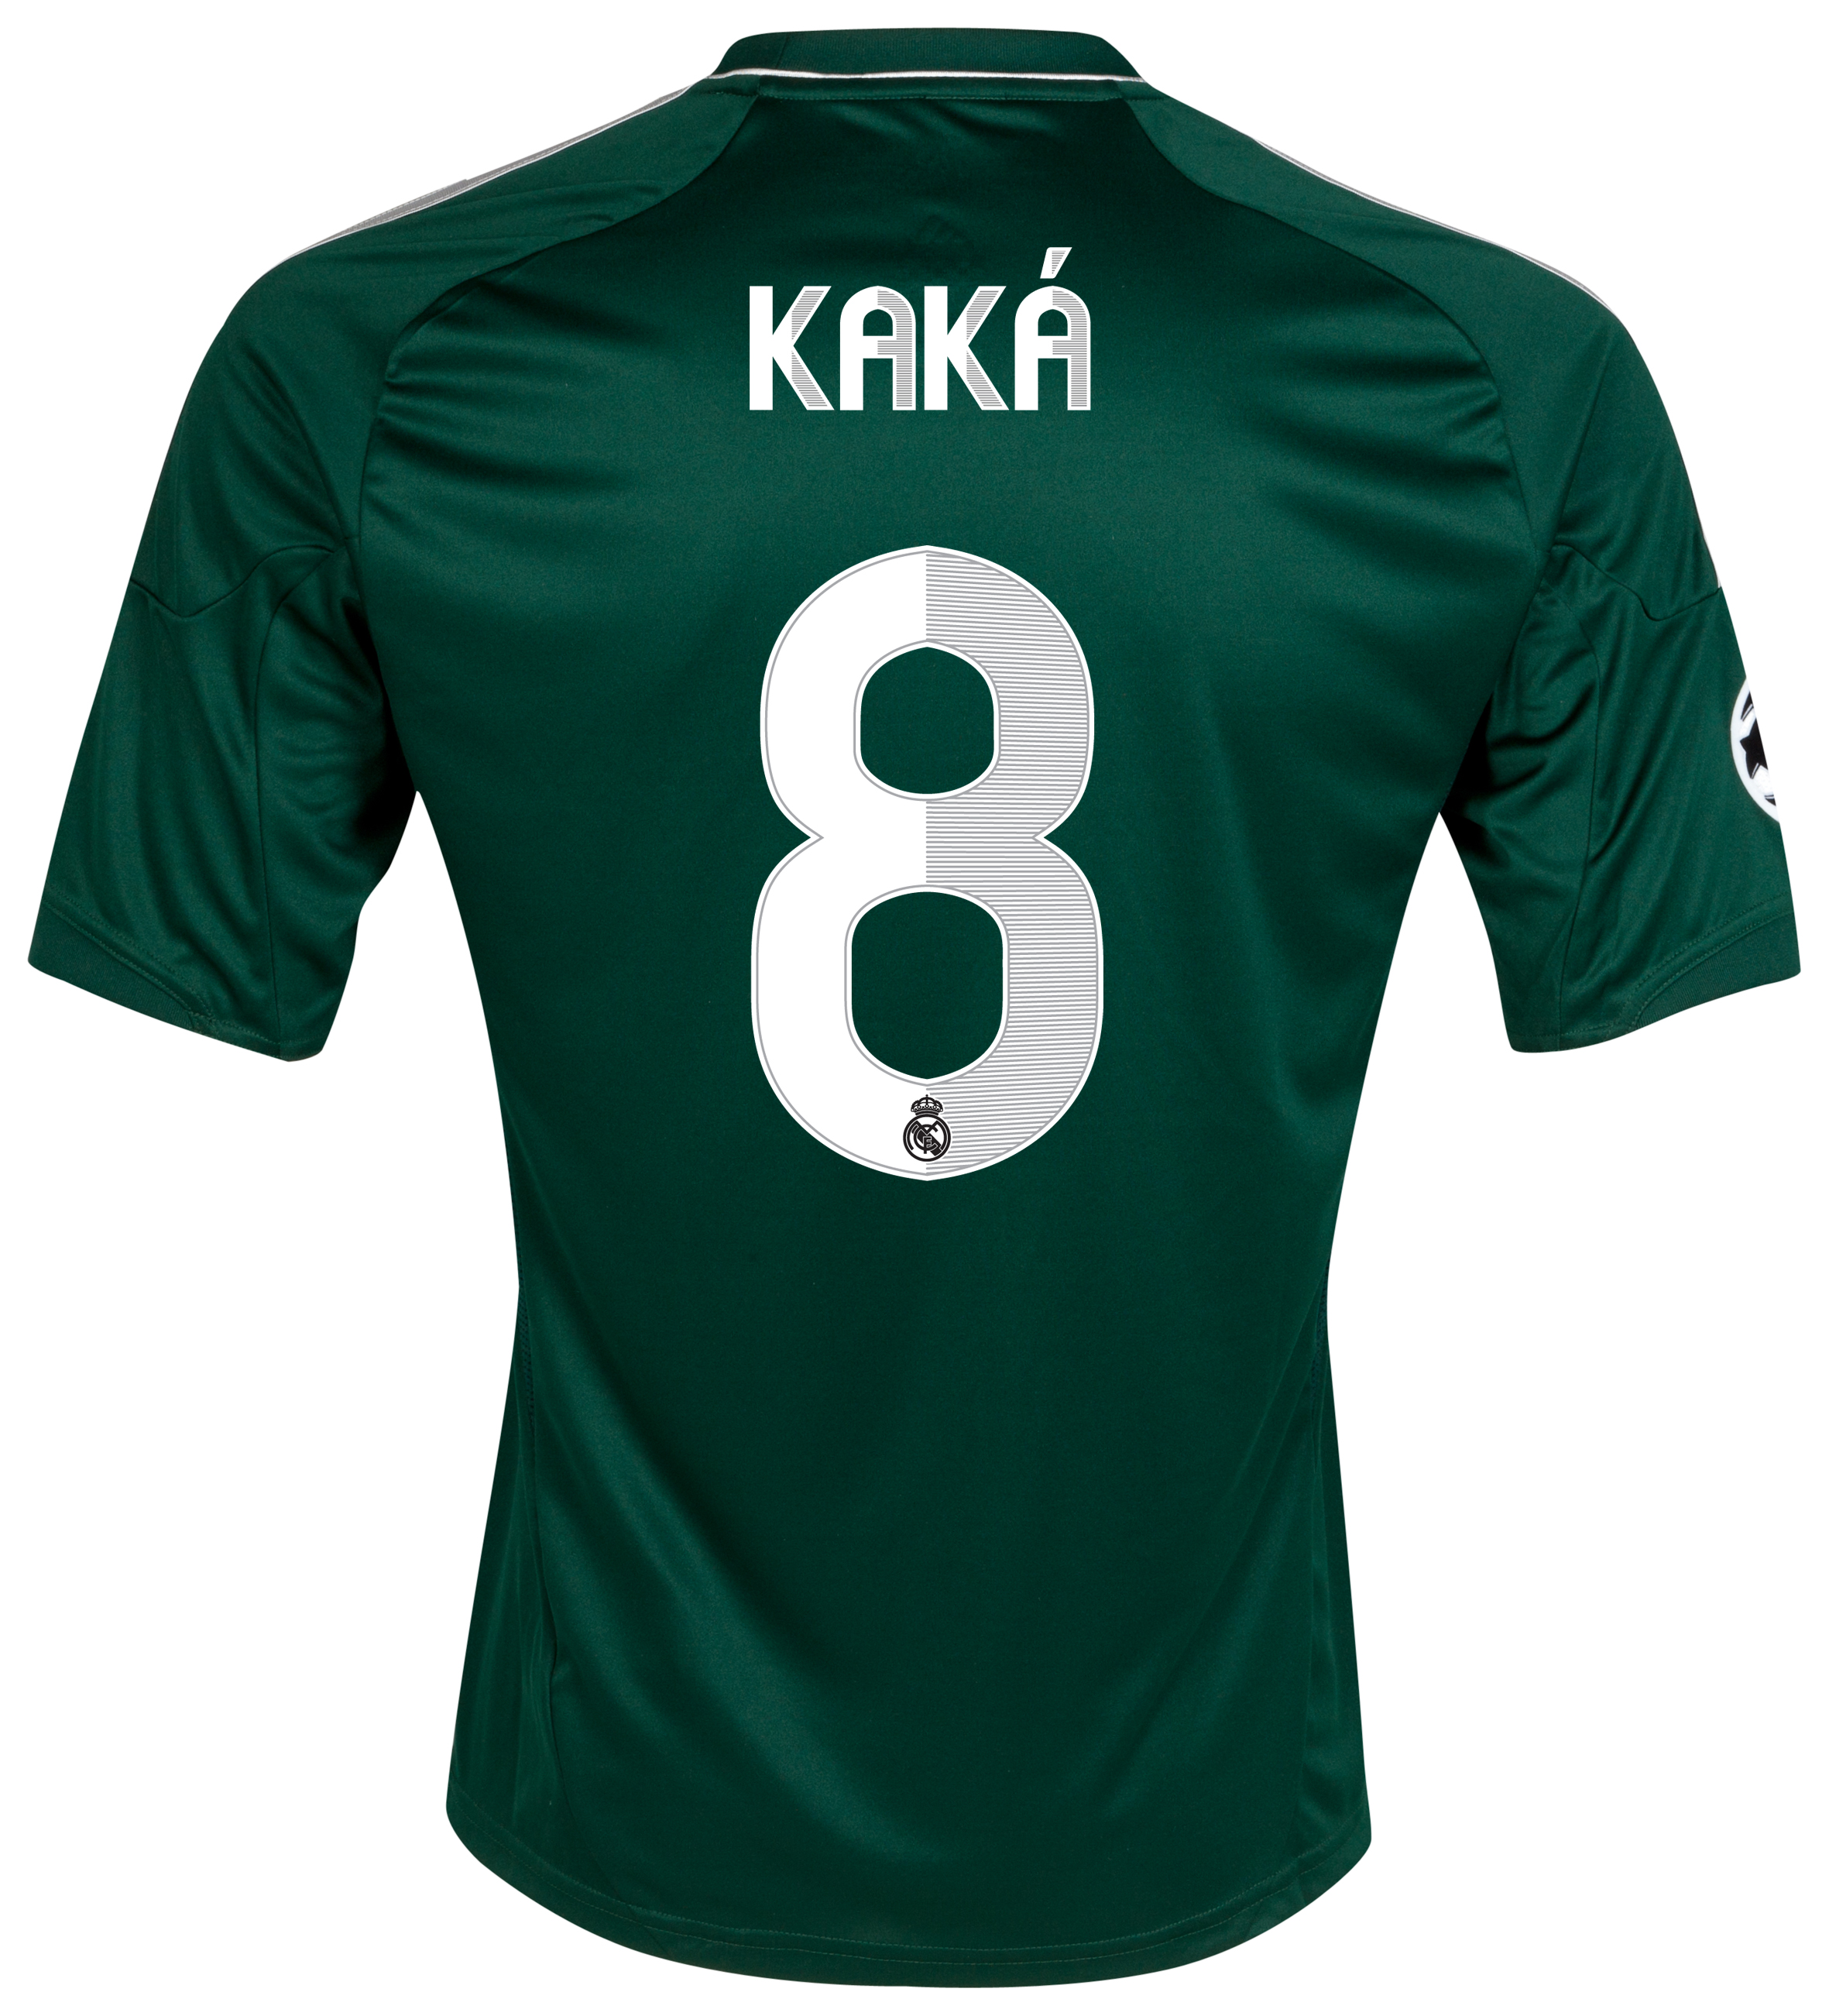 Real Madrid UEFA Champions League Third Shirt 2012/13 - Youths with Kak 8 printing